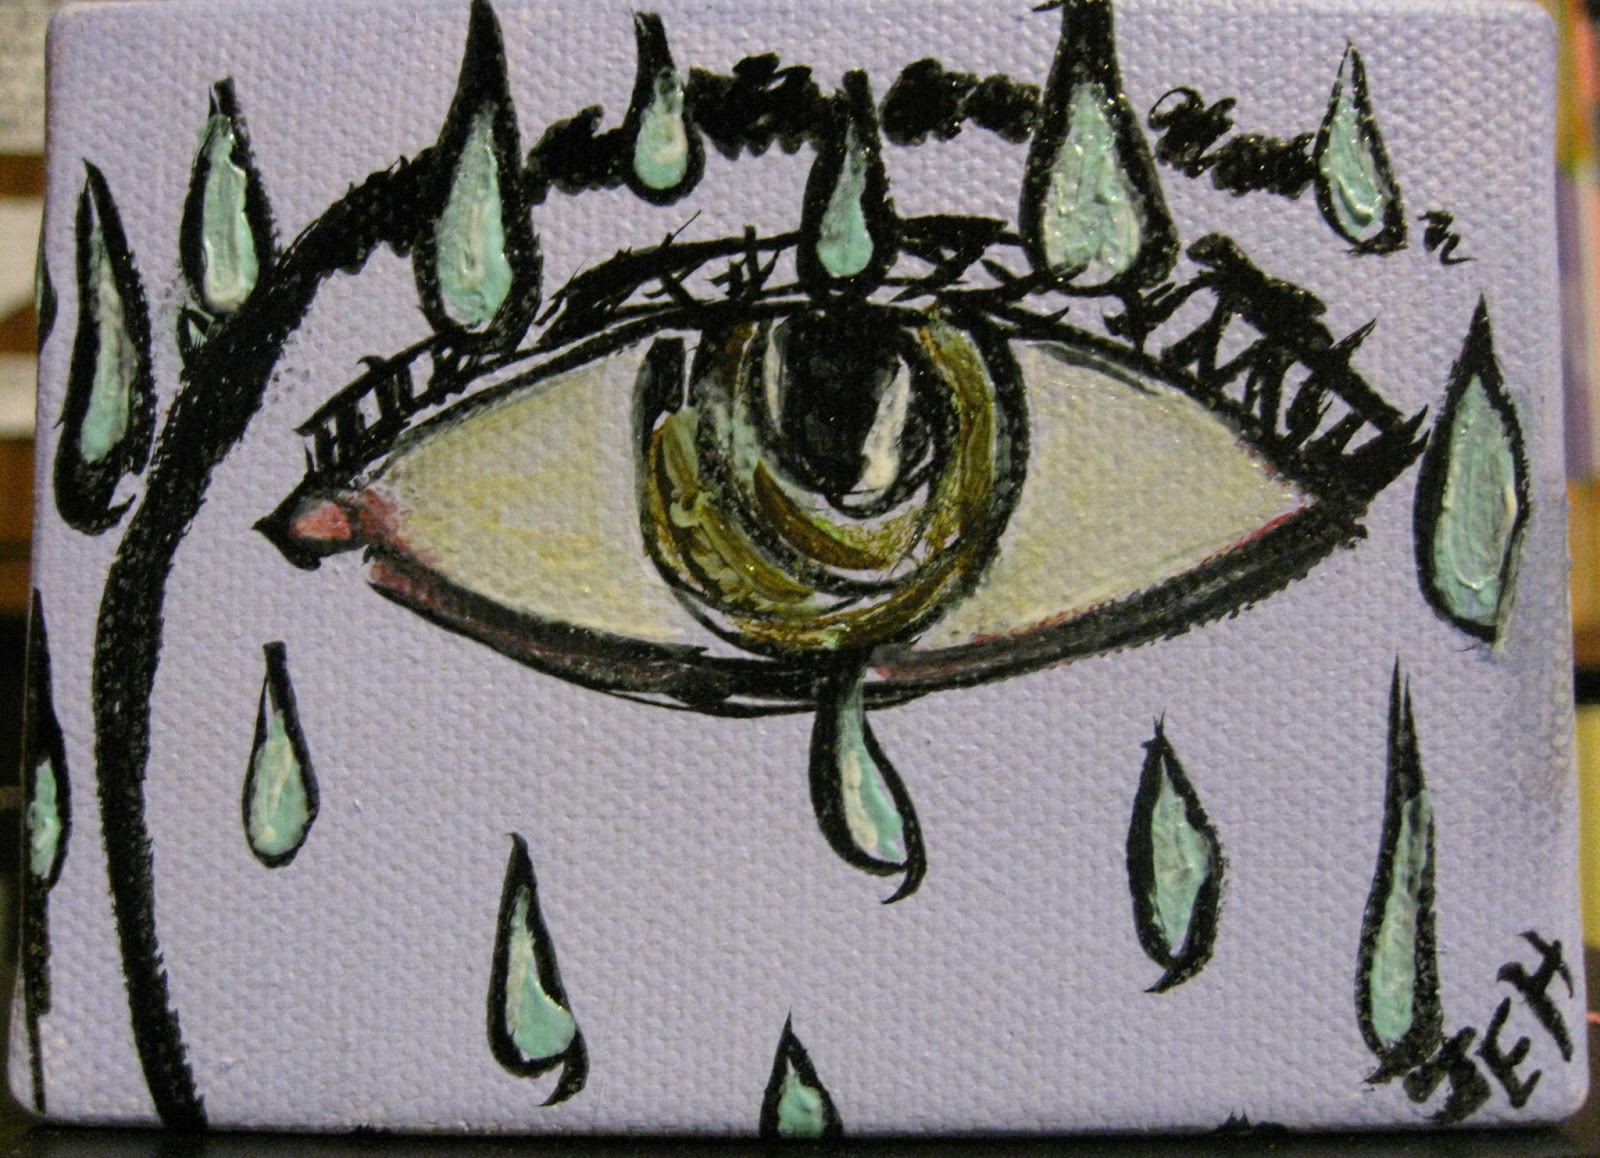 Drawn raindrops one Started Paint: of one a